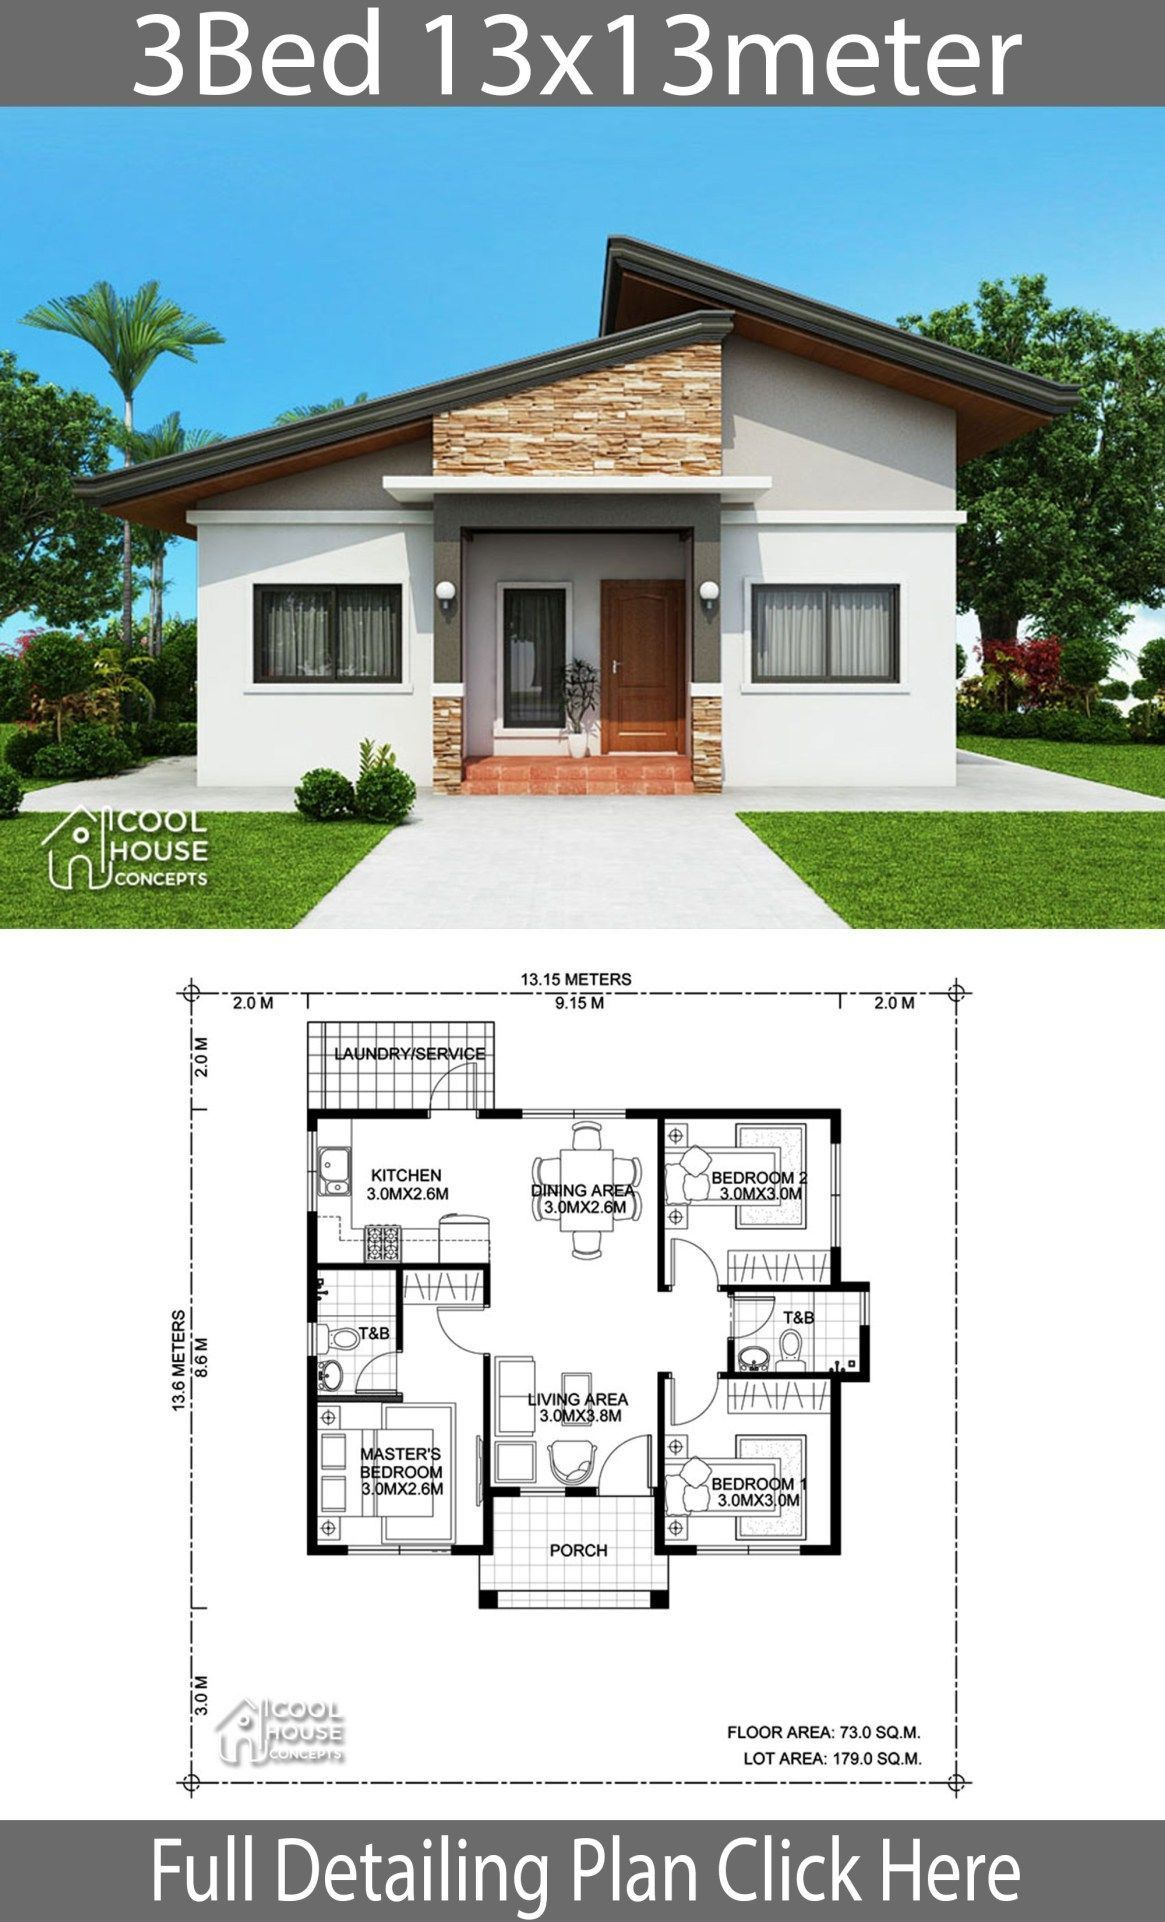 Modern Bungalow House Designs And Floor Plans 2020 Modern Bungalow House Design Modern Bungalow House Beautiful House Plans